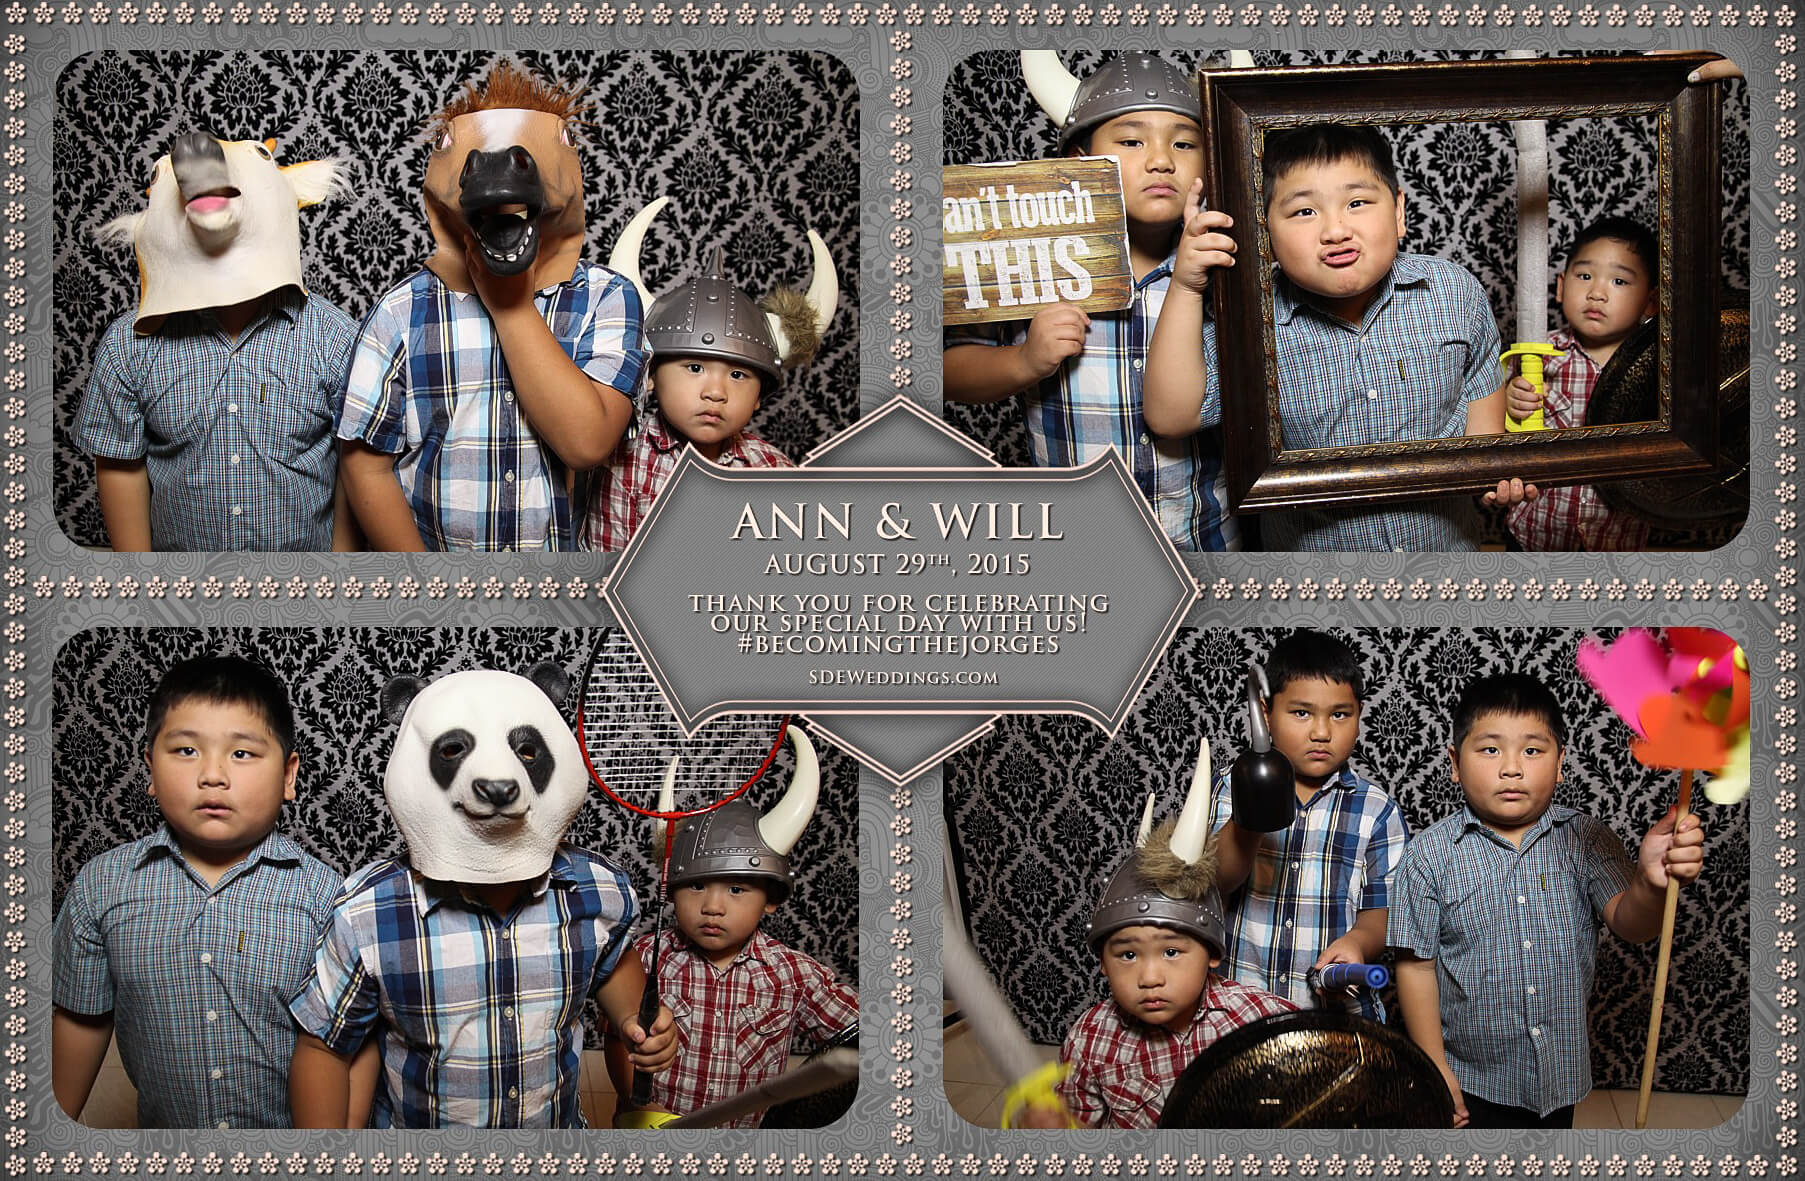 Toronto Wedding Photo Booth at Destiny Banquet Hall 2